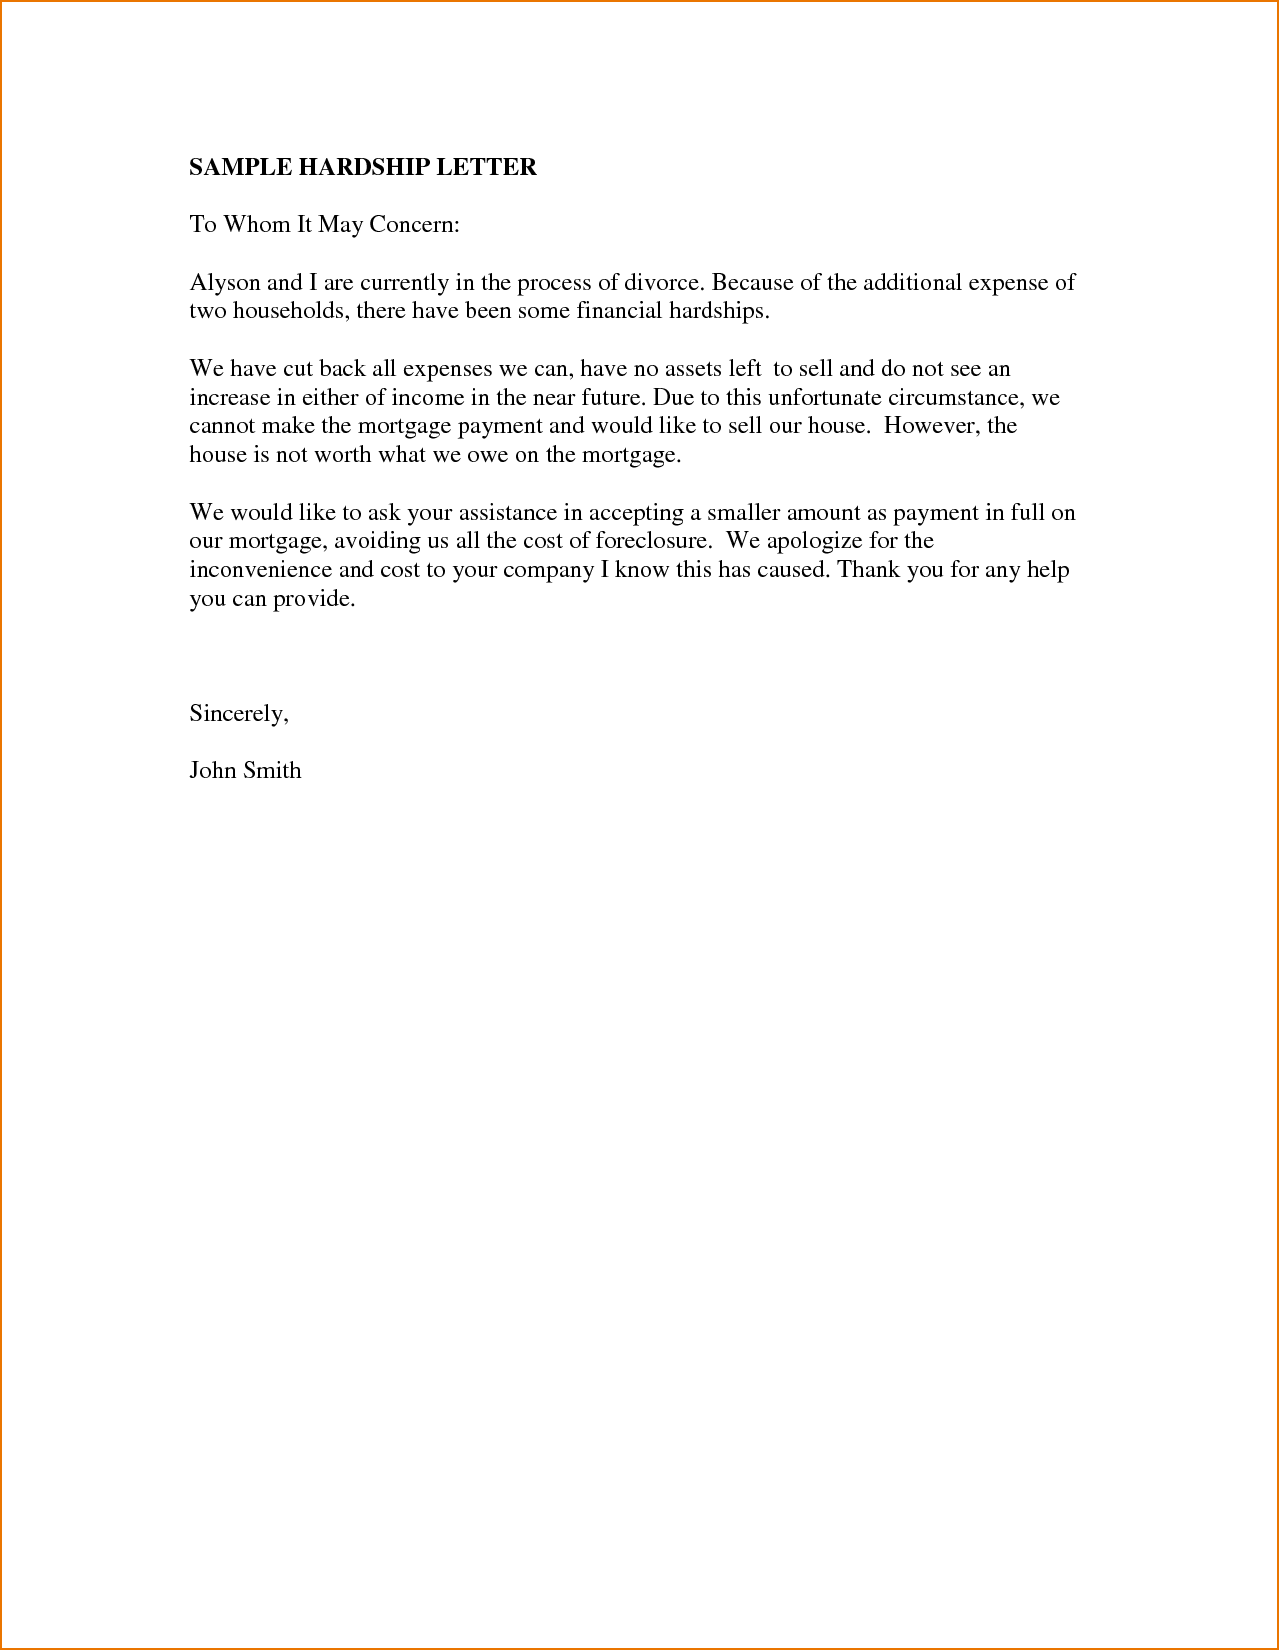 Cover Letter Template To Whom It May Concern